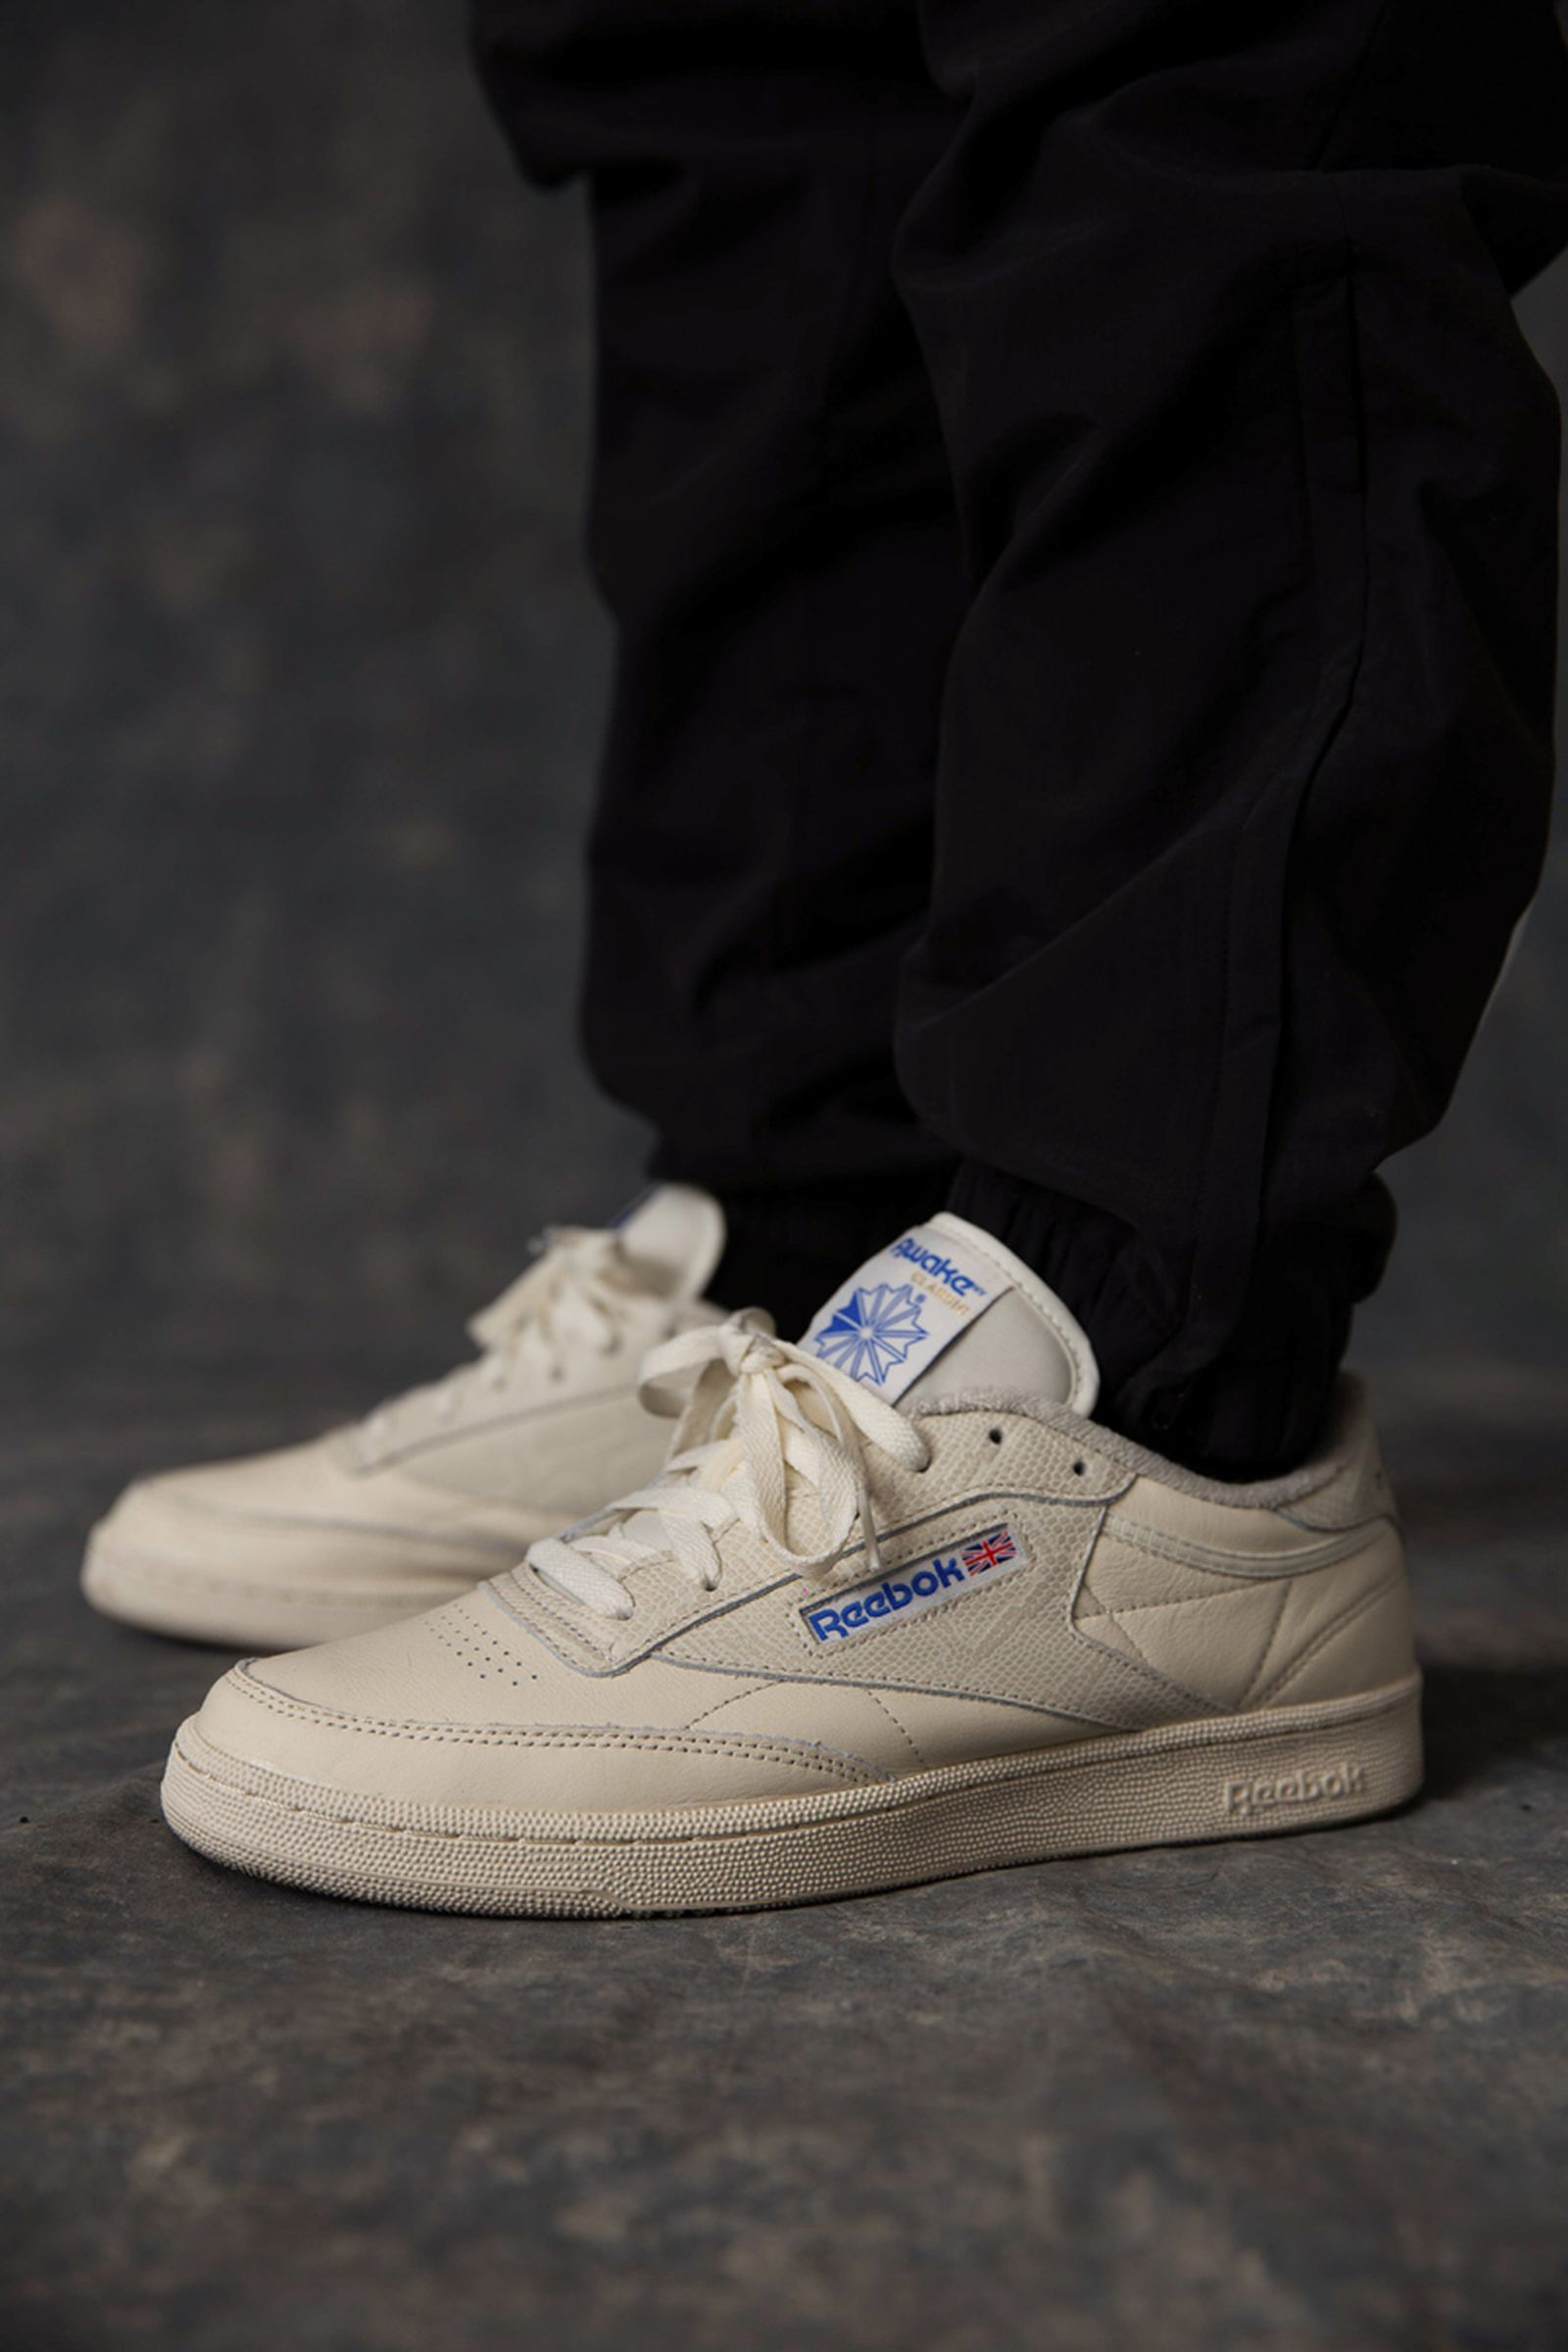 awake-ny-reebok-club-c-classic-leather-release-date-price-8